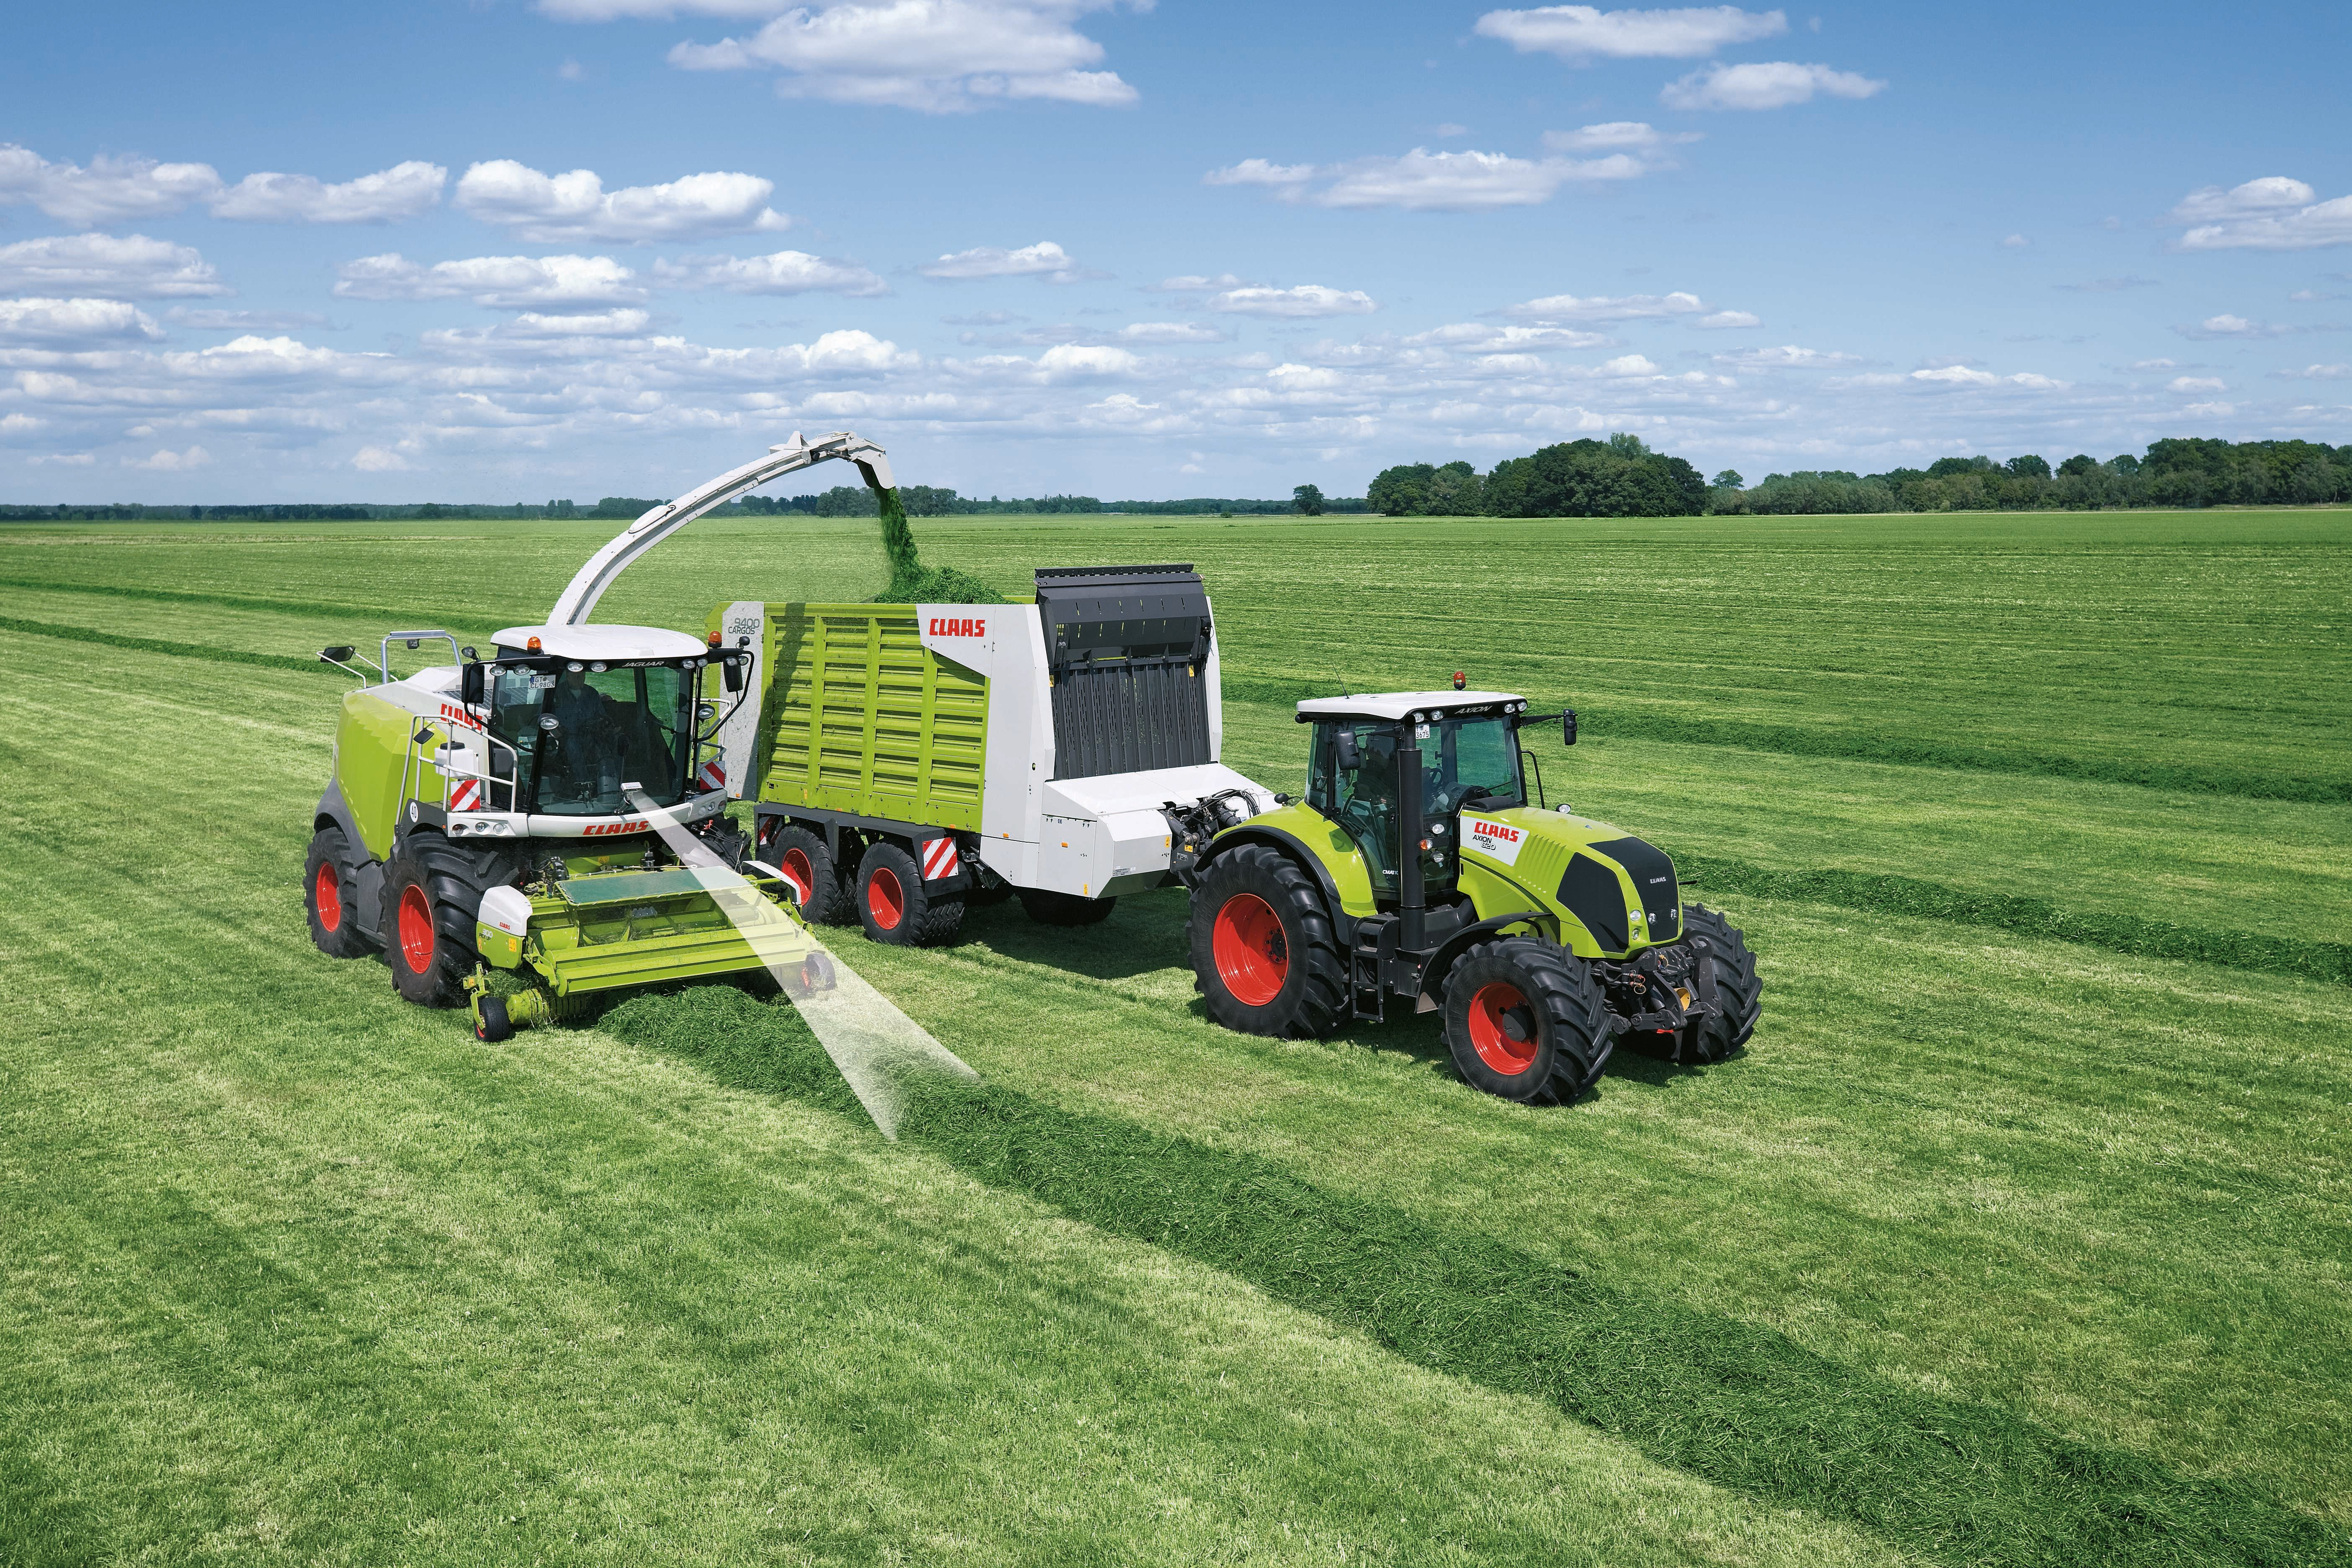 Opinions on Agricultural machinery